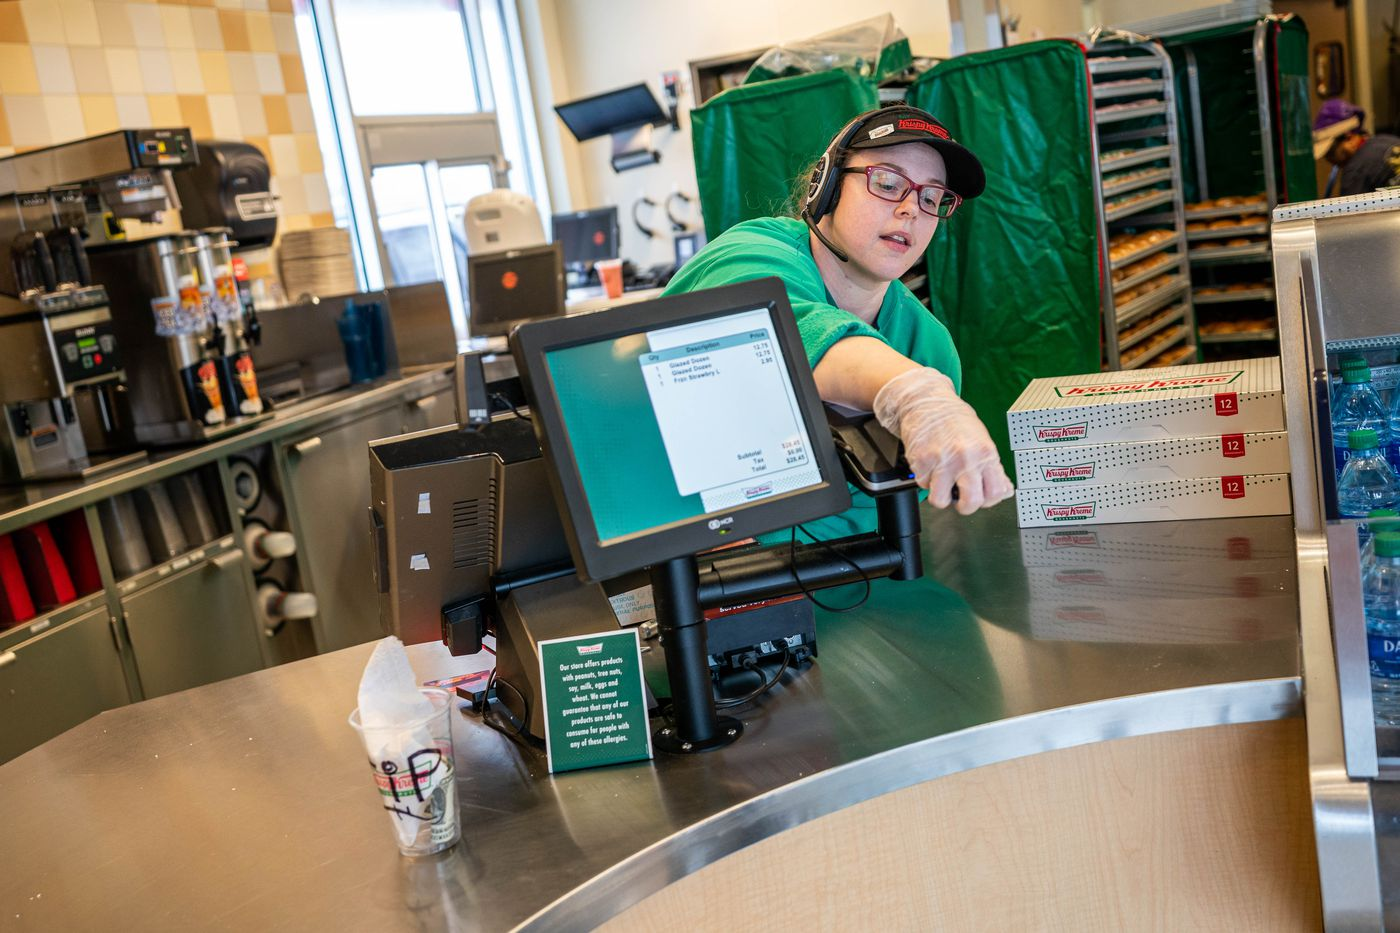 """Amber Starks processes a credit card payment for a drive-through customer at Krispy Kreme on Wednesday, March 18, 2020 in Anchorage. The business has modified its operations since the coronavirus outbreak, letting some staff go. """"I'm just happy to still have a job,"""" said Starks, a single mother of two children. (Loren Holmes / ADN)"""